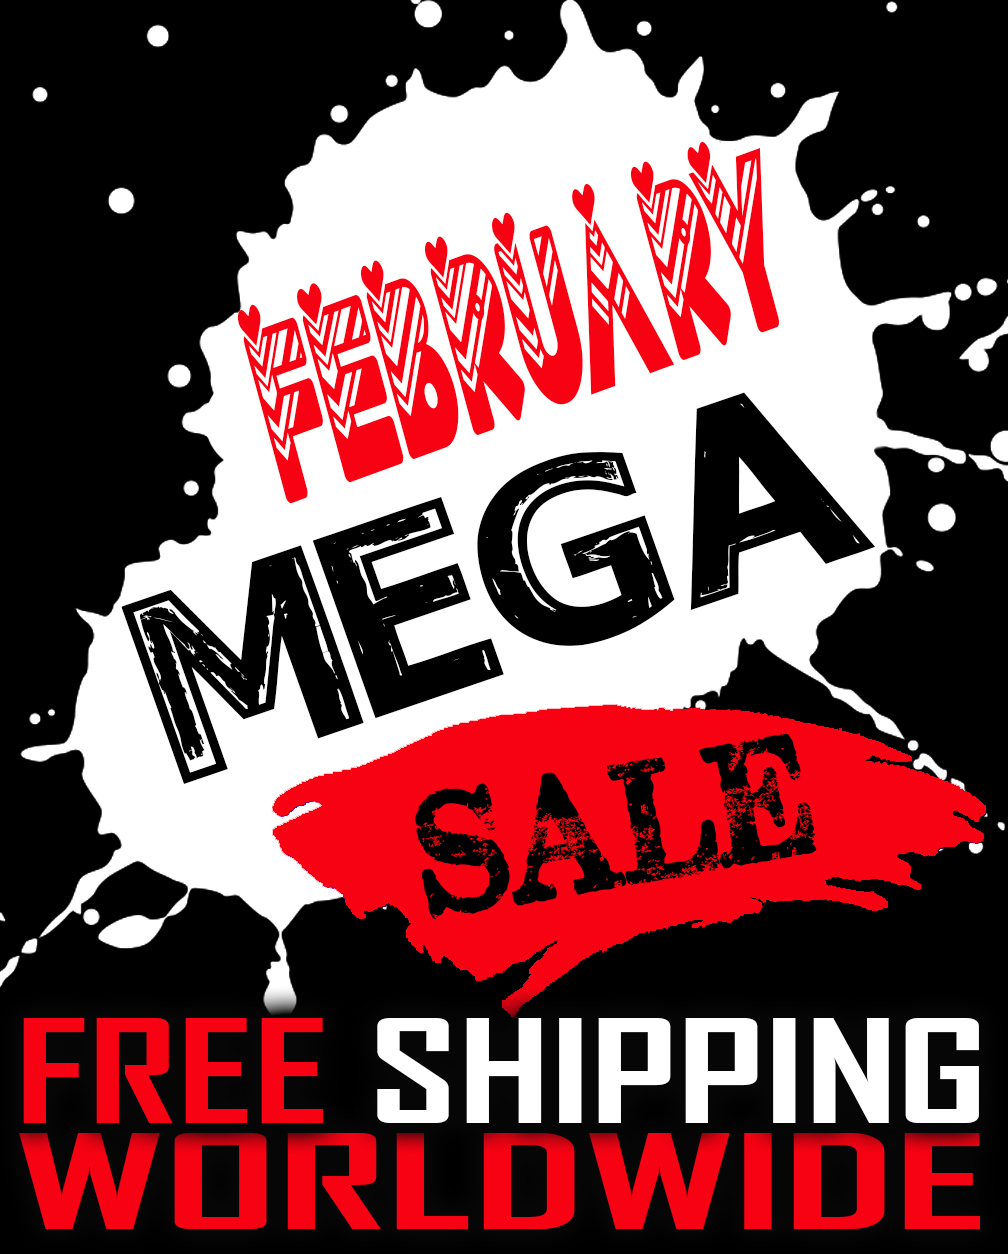 february-mega-sale-free-shipping-new.jpg